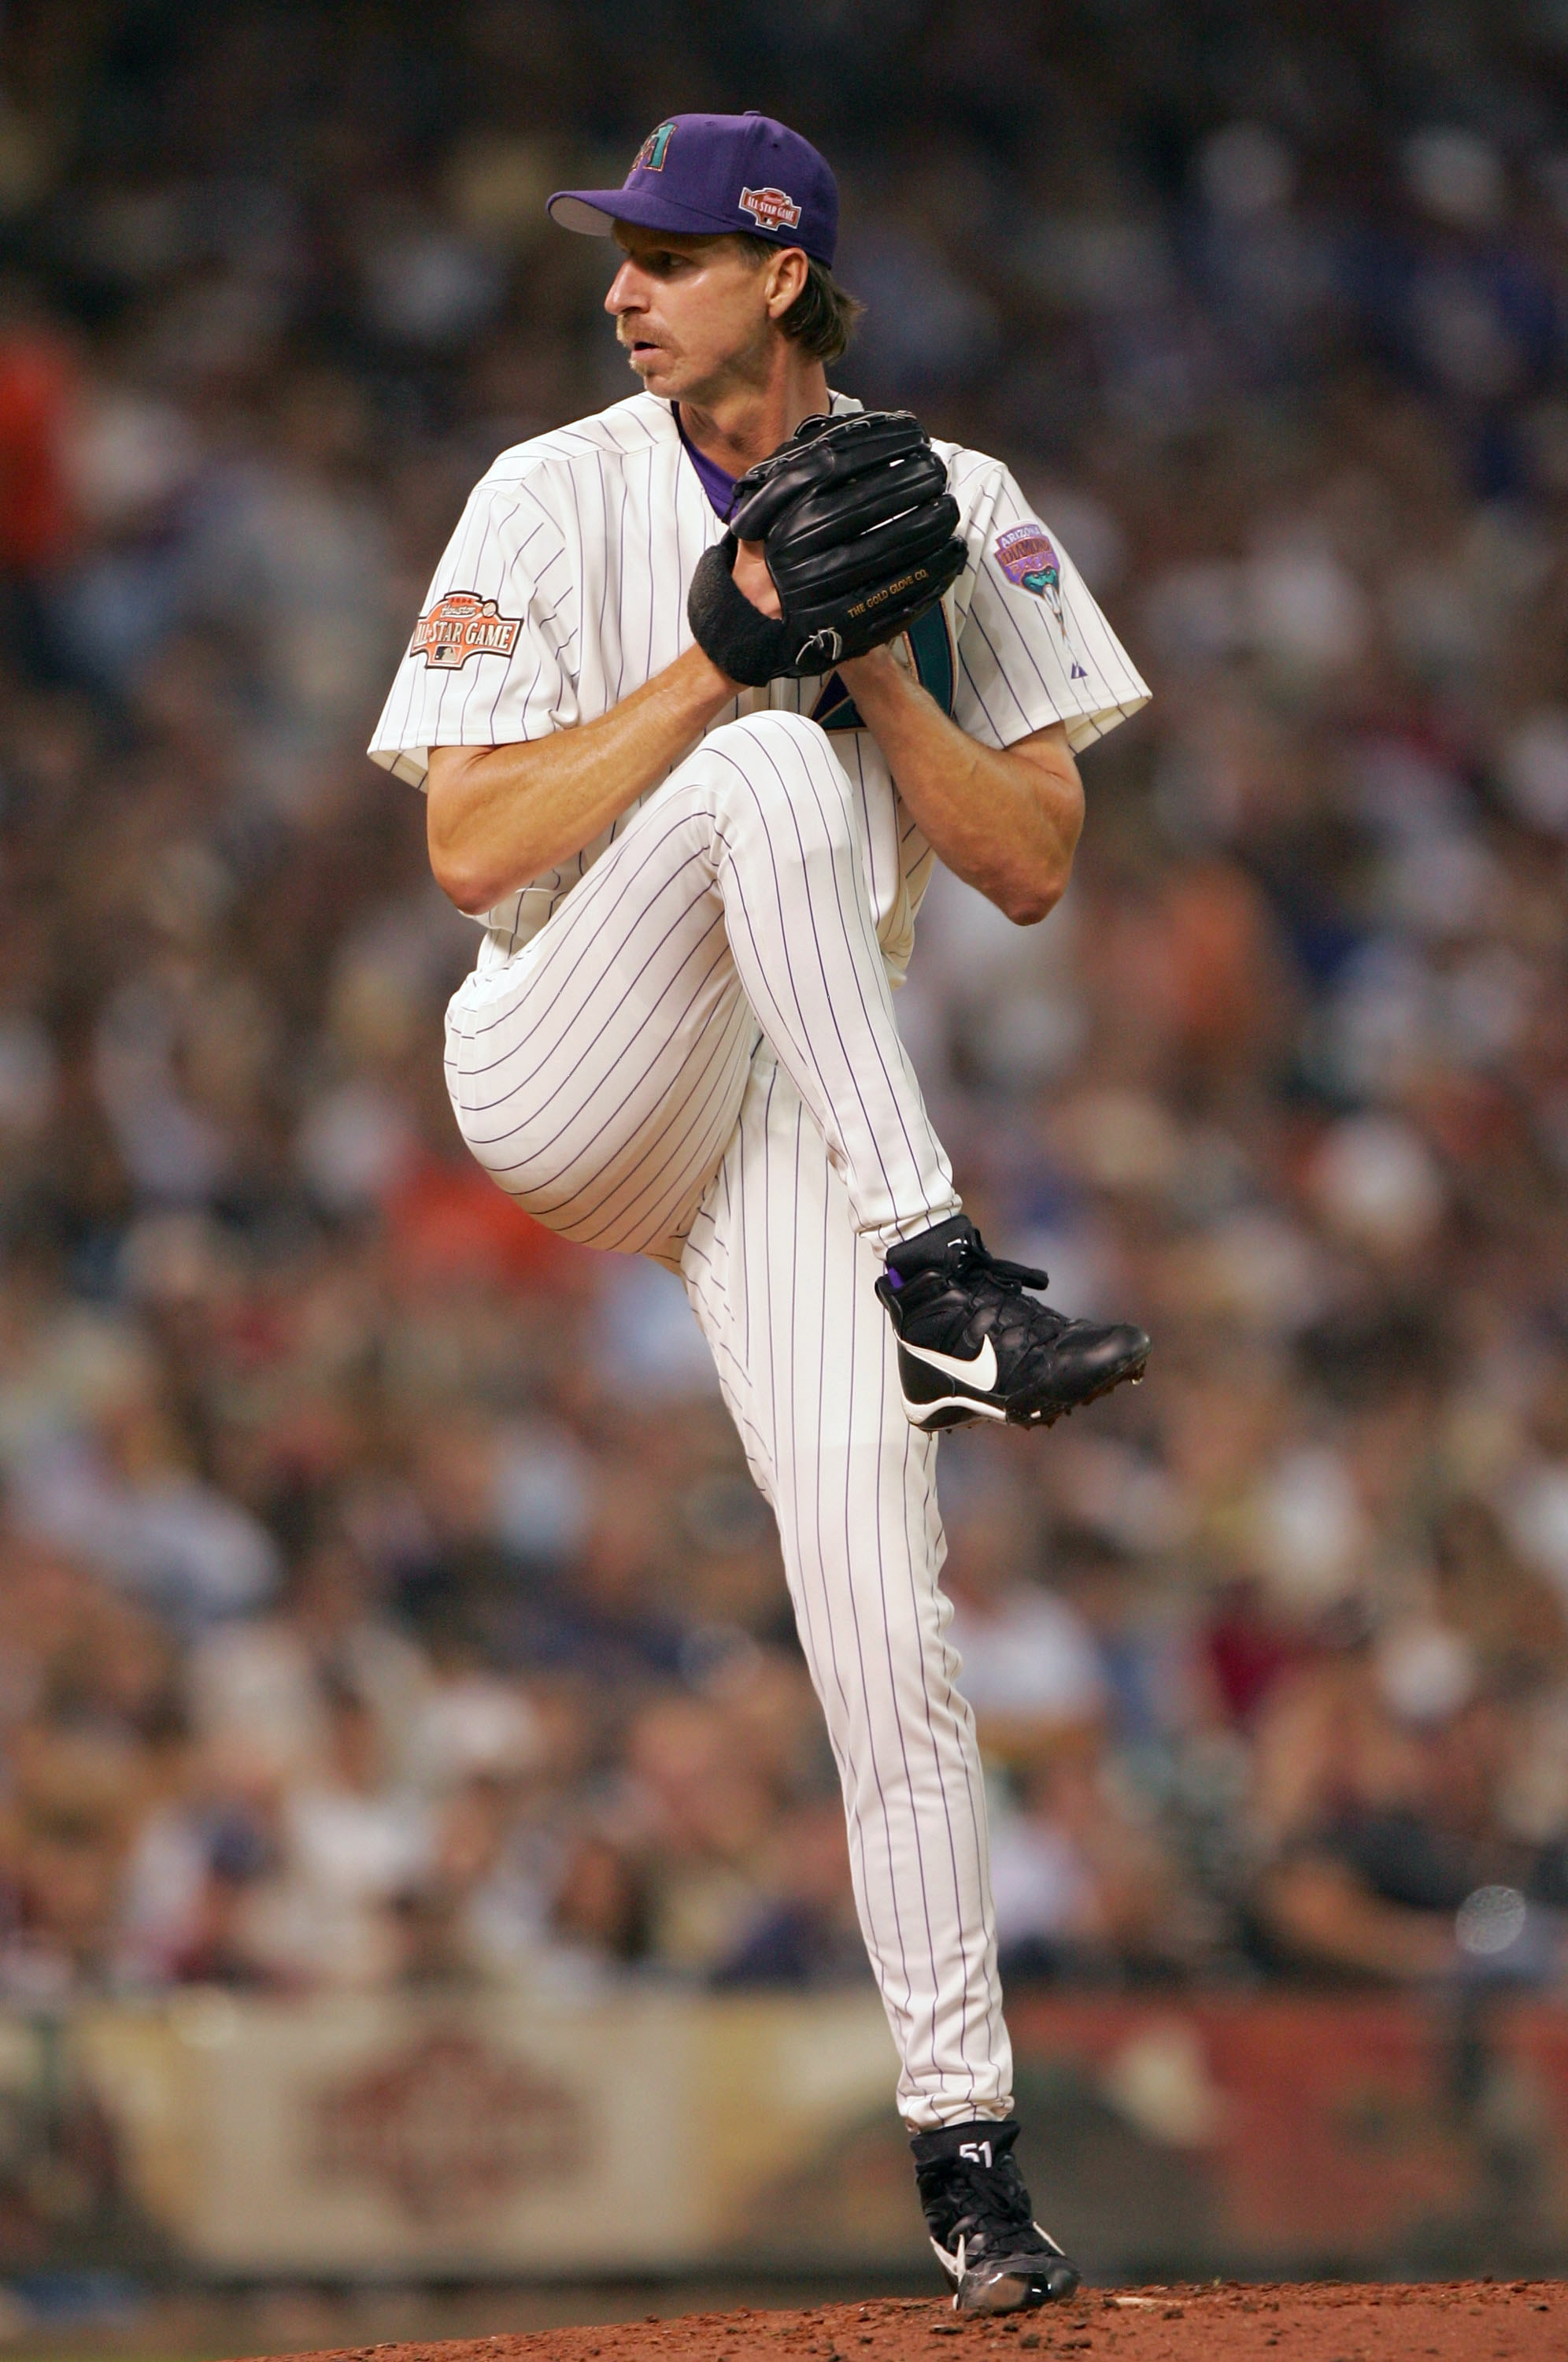 Randy Johnson winding up pitch on the mound